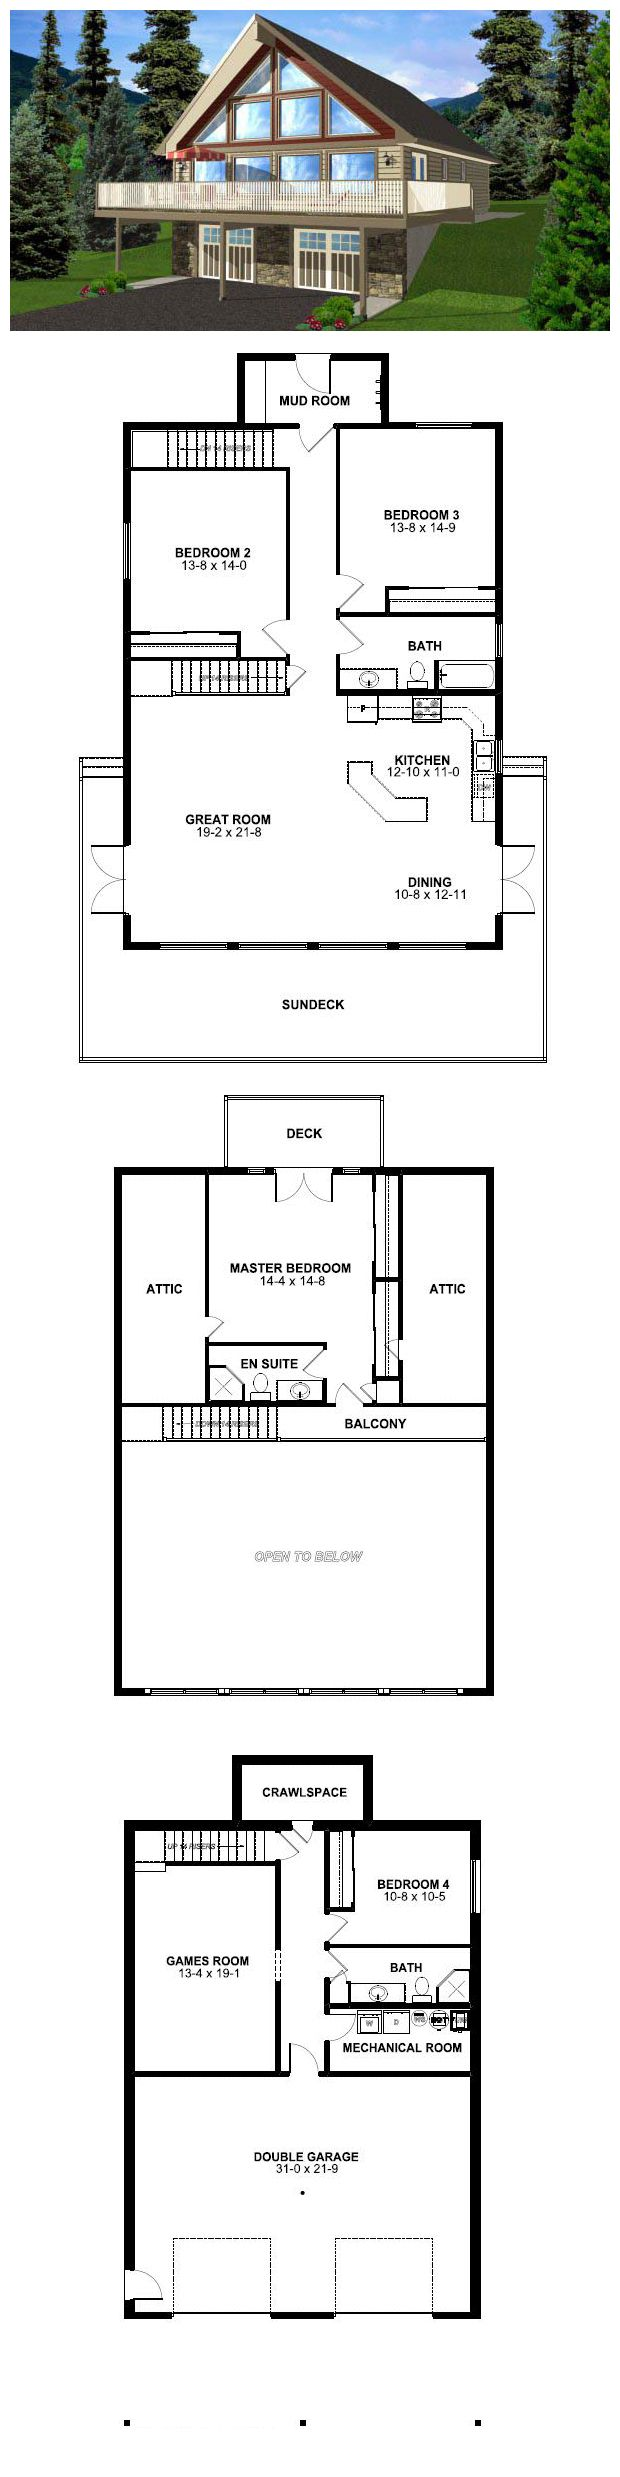 House Plan 99976 | Total living area: 3164 sq ft, 4 bedrooms & 3 bathrooms. This spacious home is ideal for year round living with four bedrooms, three bathrooms and ample room for relaxing or entertaining. Complete with a two car garage, you will be ready for either relaxing by the lake or on the slopes.